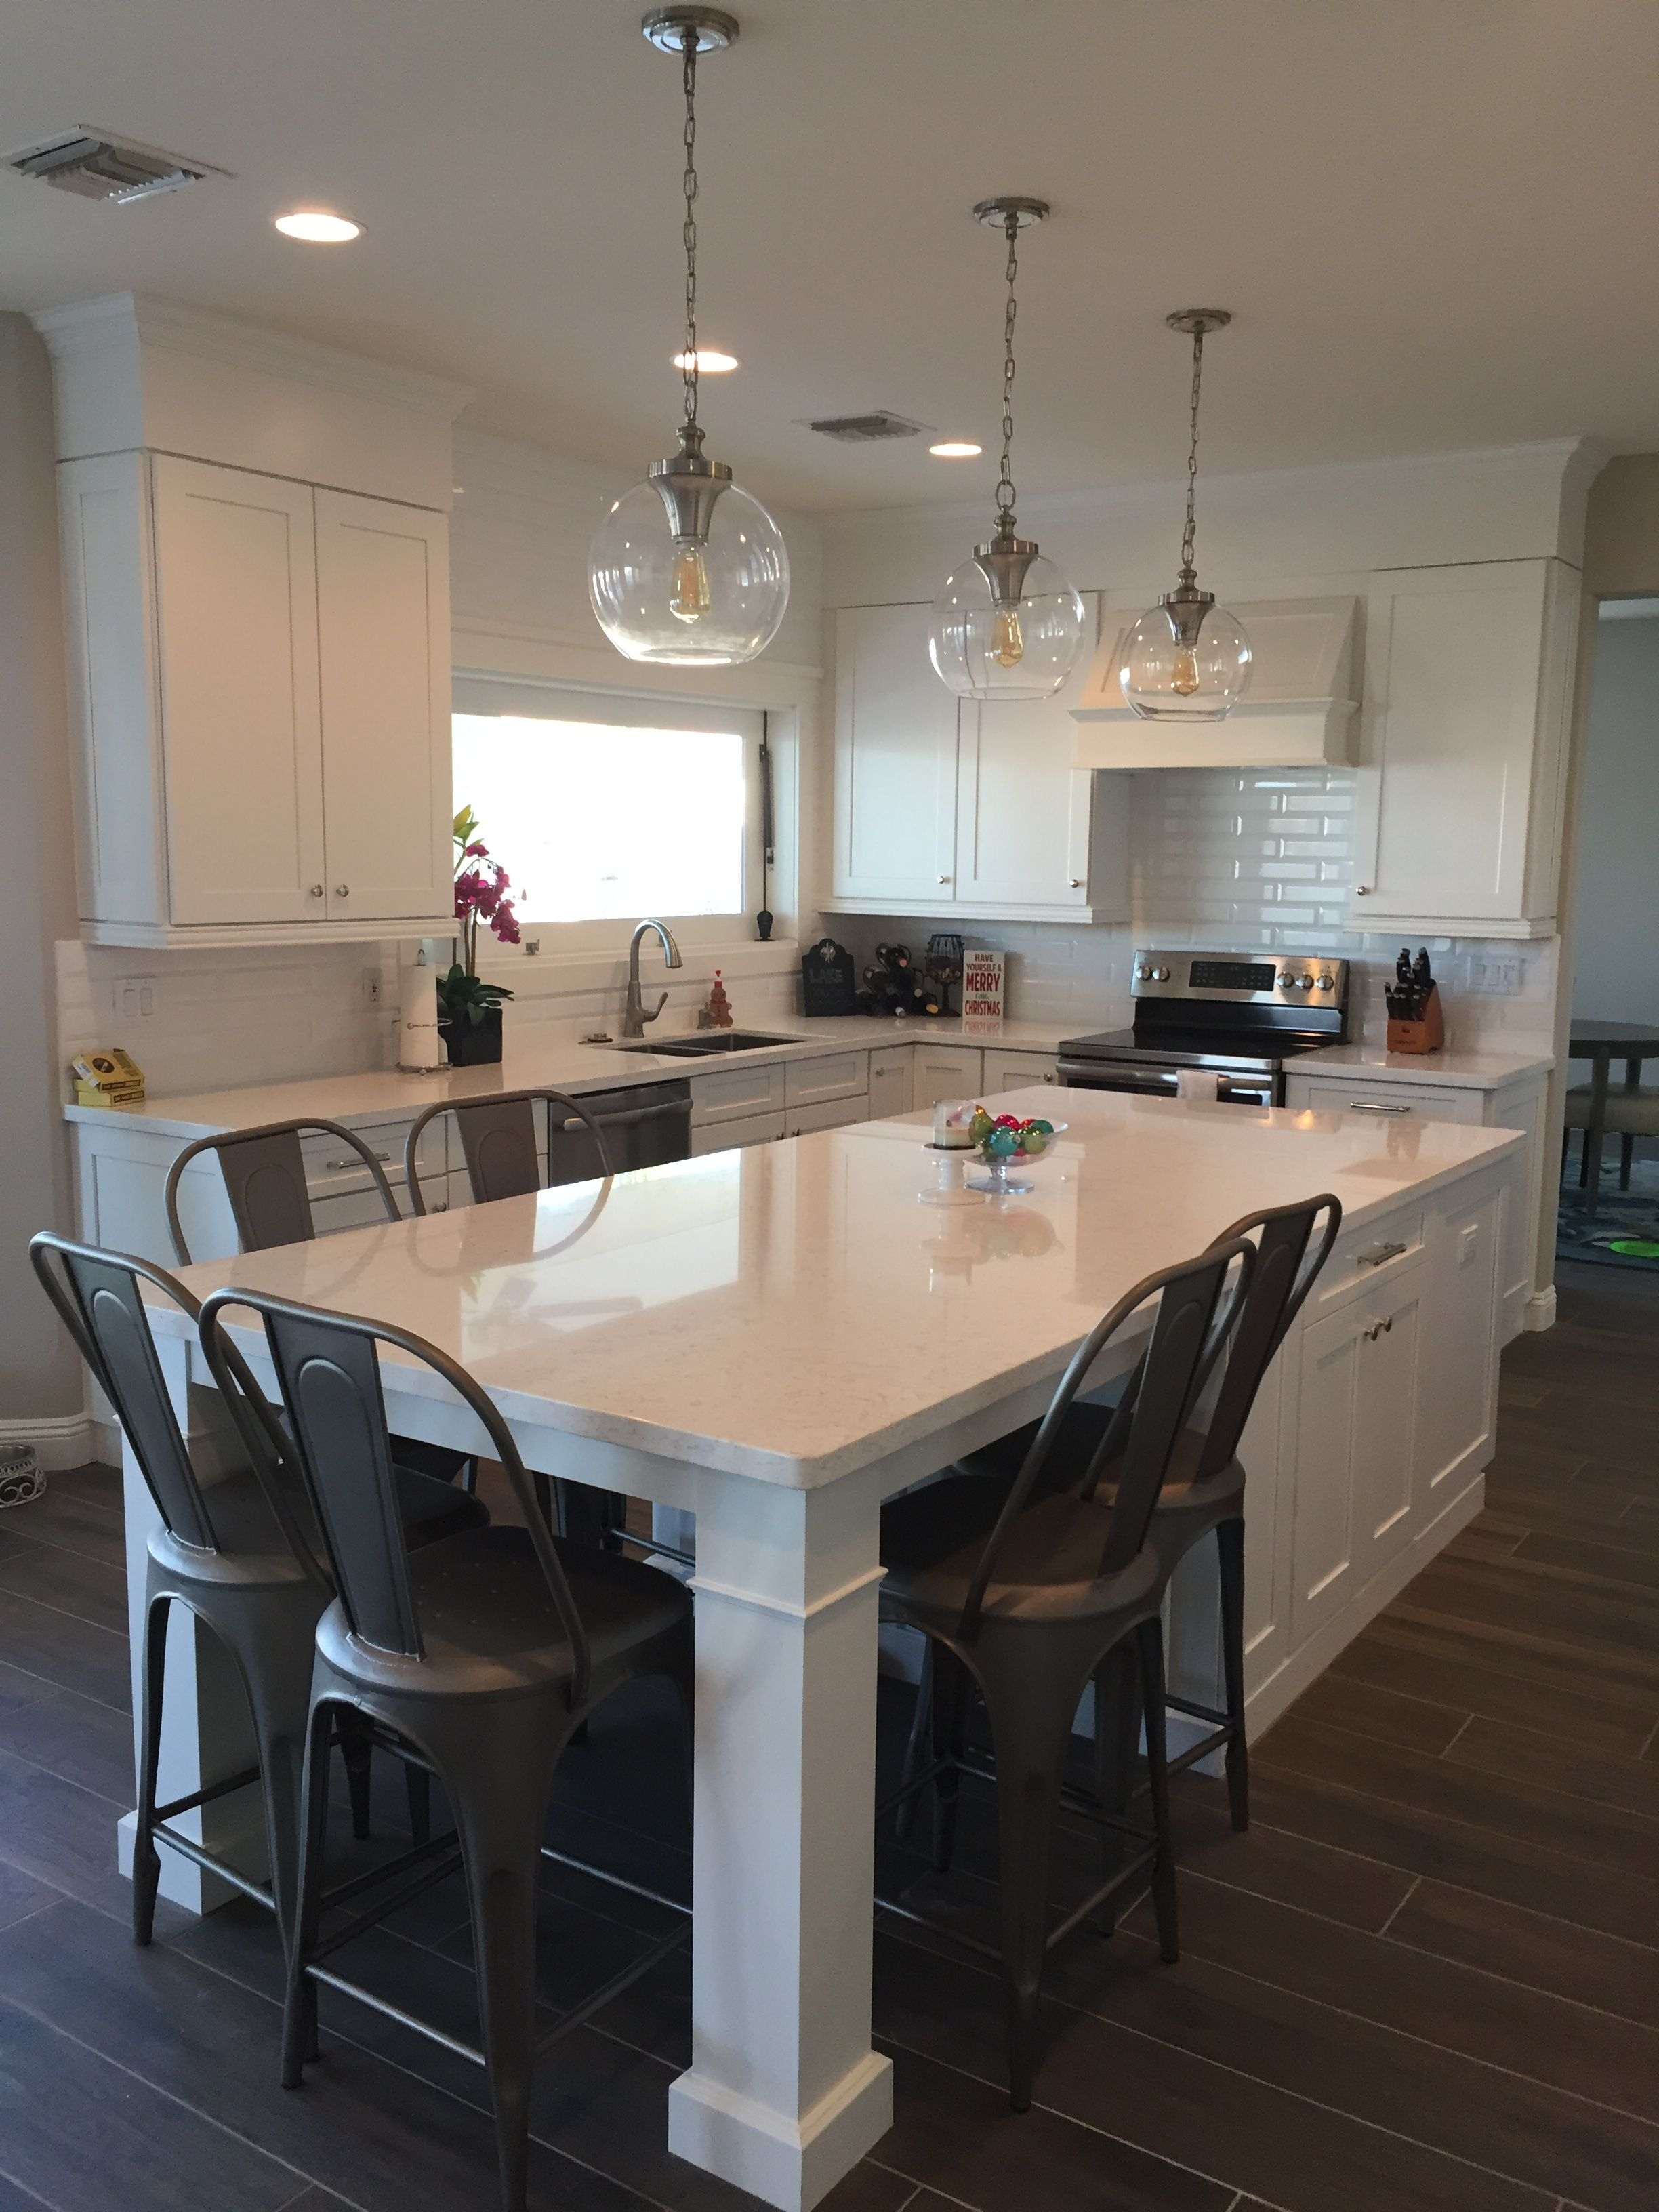 Attirant Kitchen Island Ideas   White Shaker Waypoint Cabinets Designed By: Nathan  Hoffman Wonder If We Could Do This?